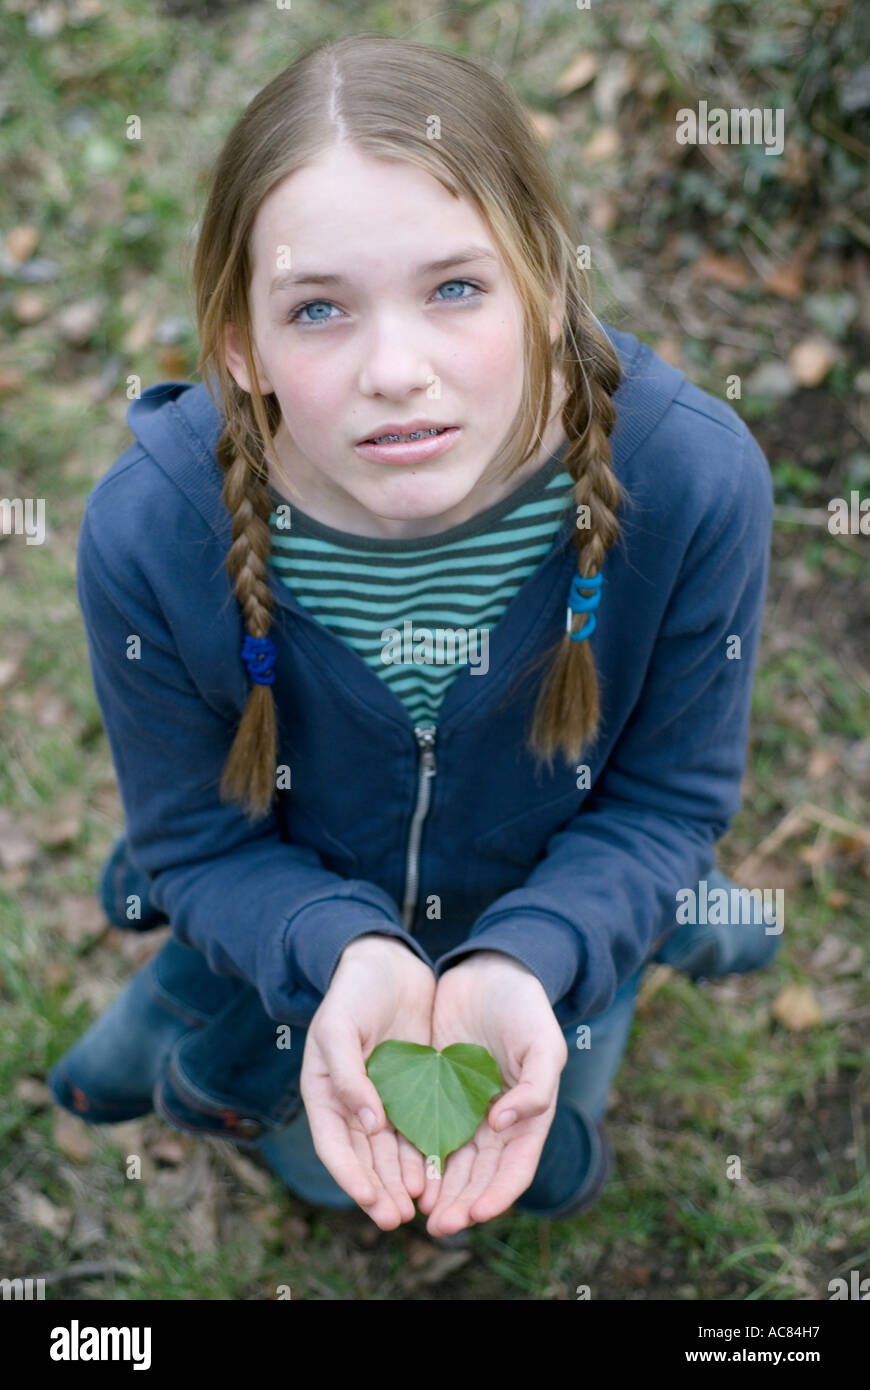 13 Year Old Girl: Portrait Of A 13 Year Old Girl With A Leaf In It S Hands